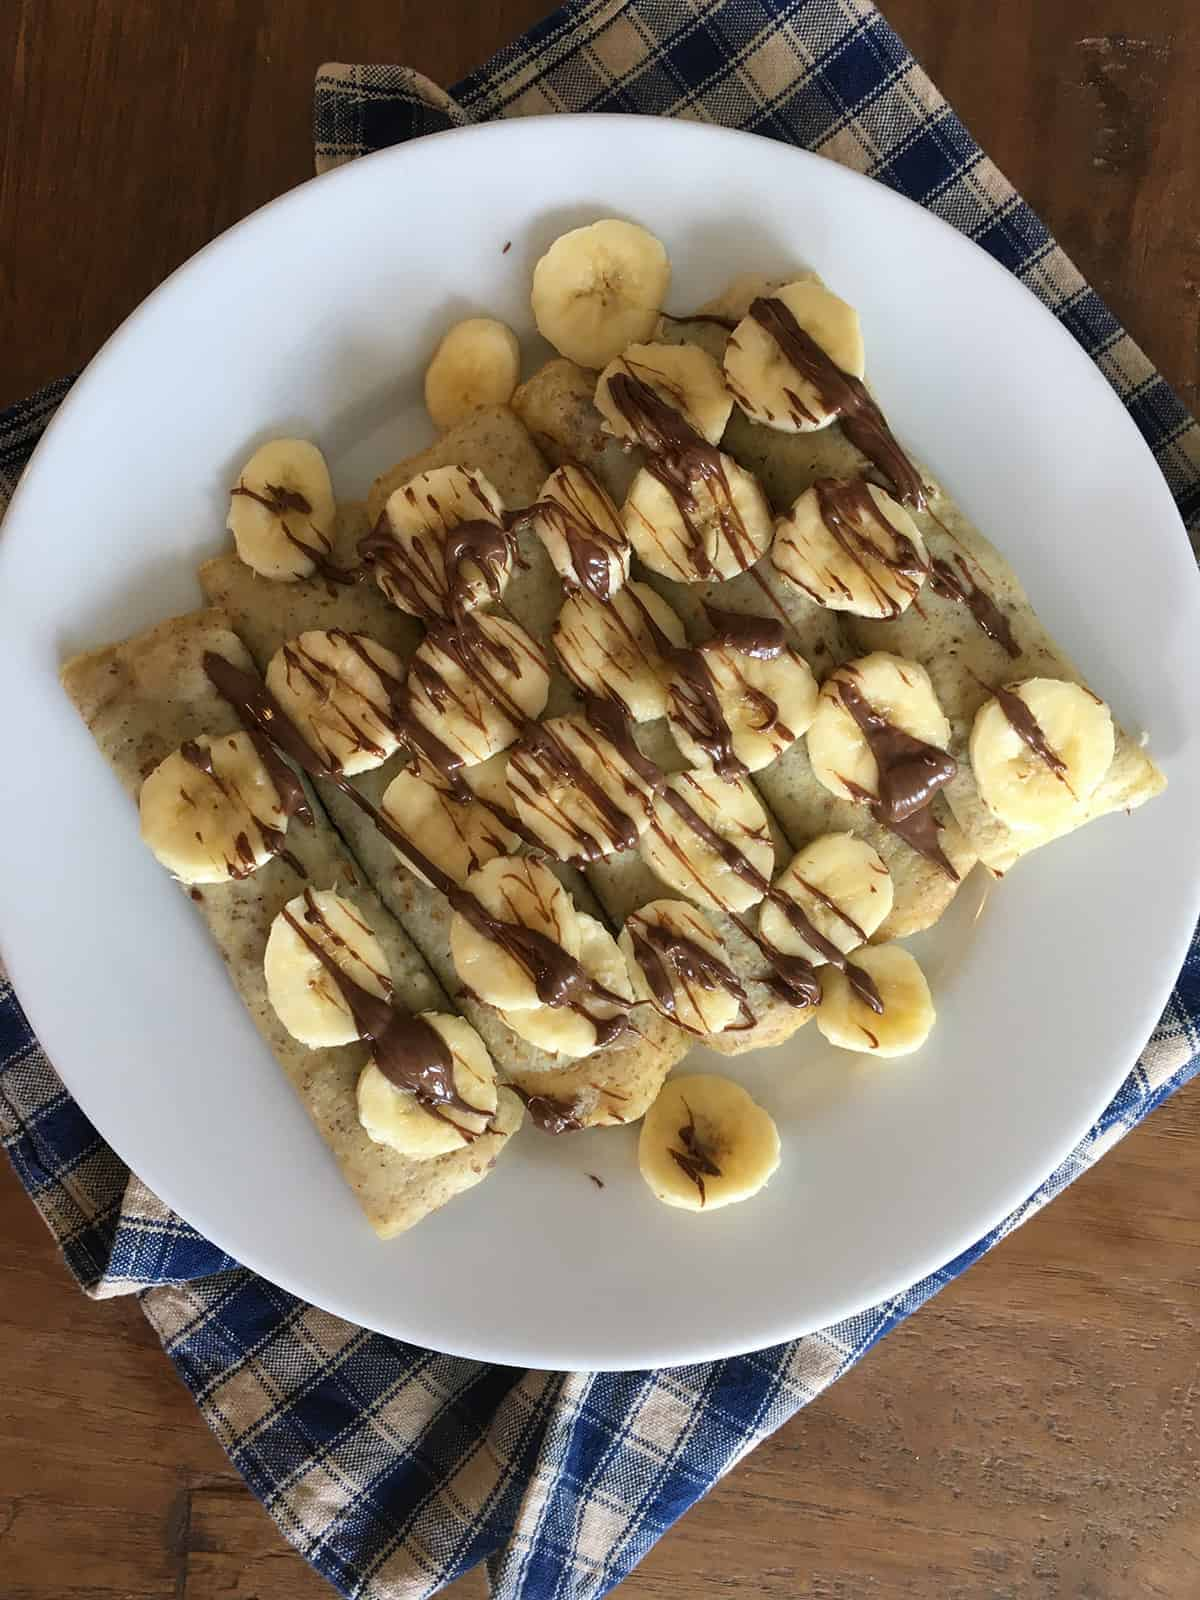 Banana Nutella Crepes on a white plate with a tan and blue plaid napkin